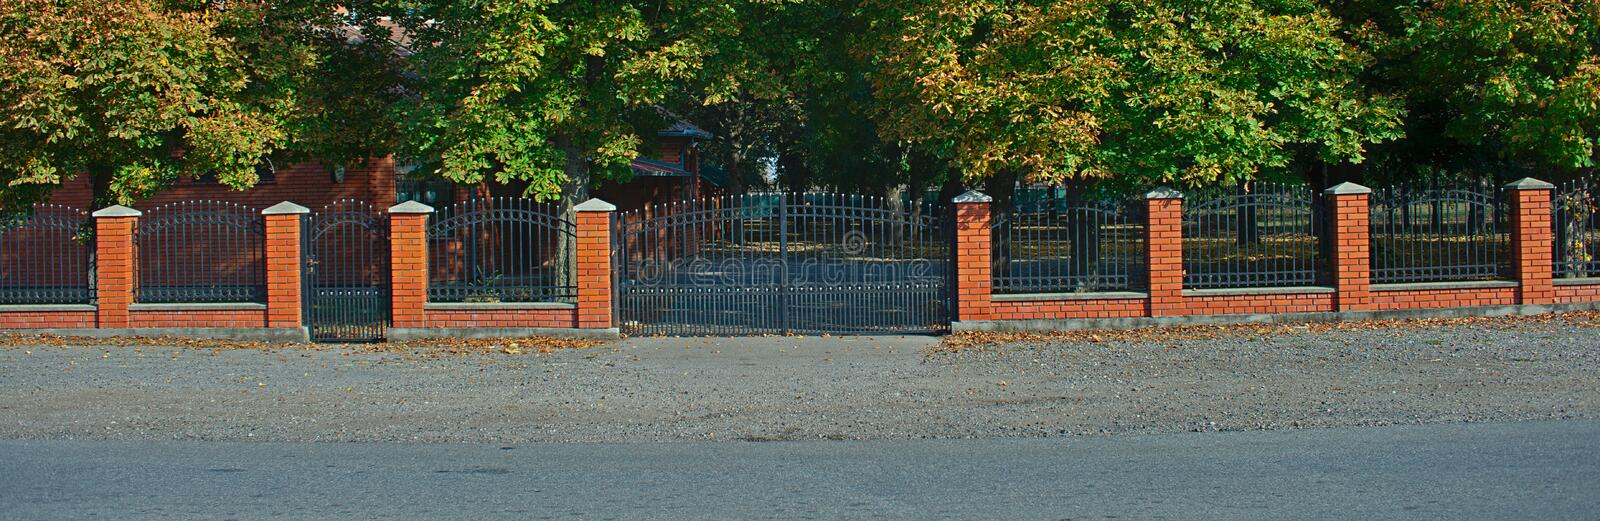 Simple metal fence with red bricks wall and pillars.  royalty free stock photo